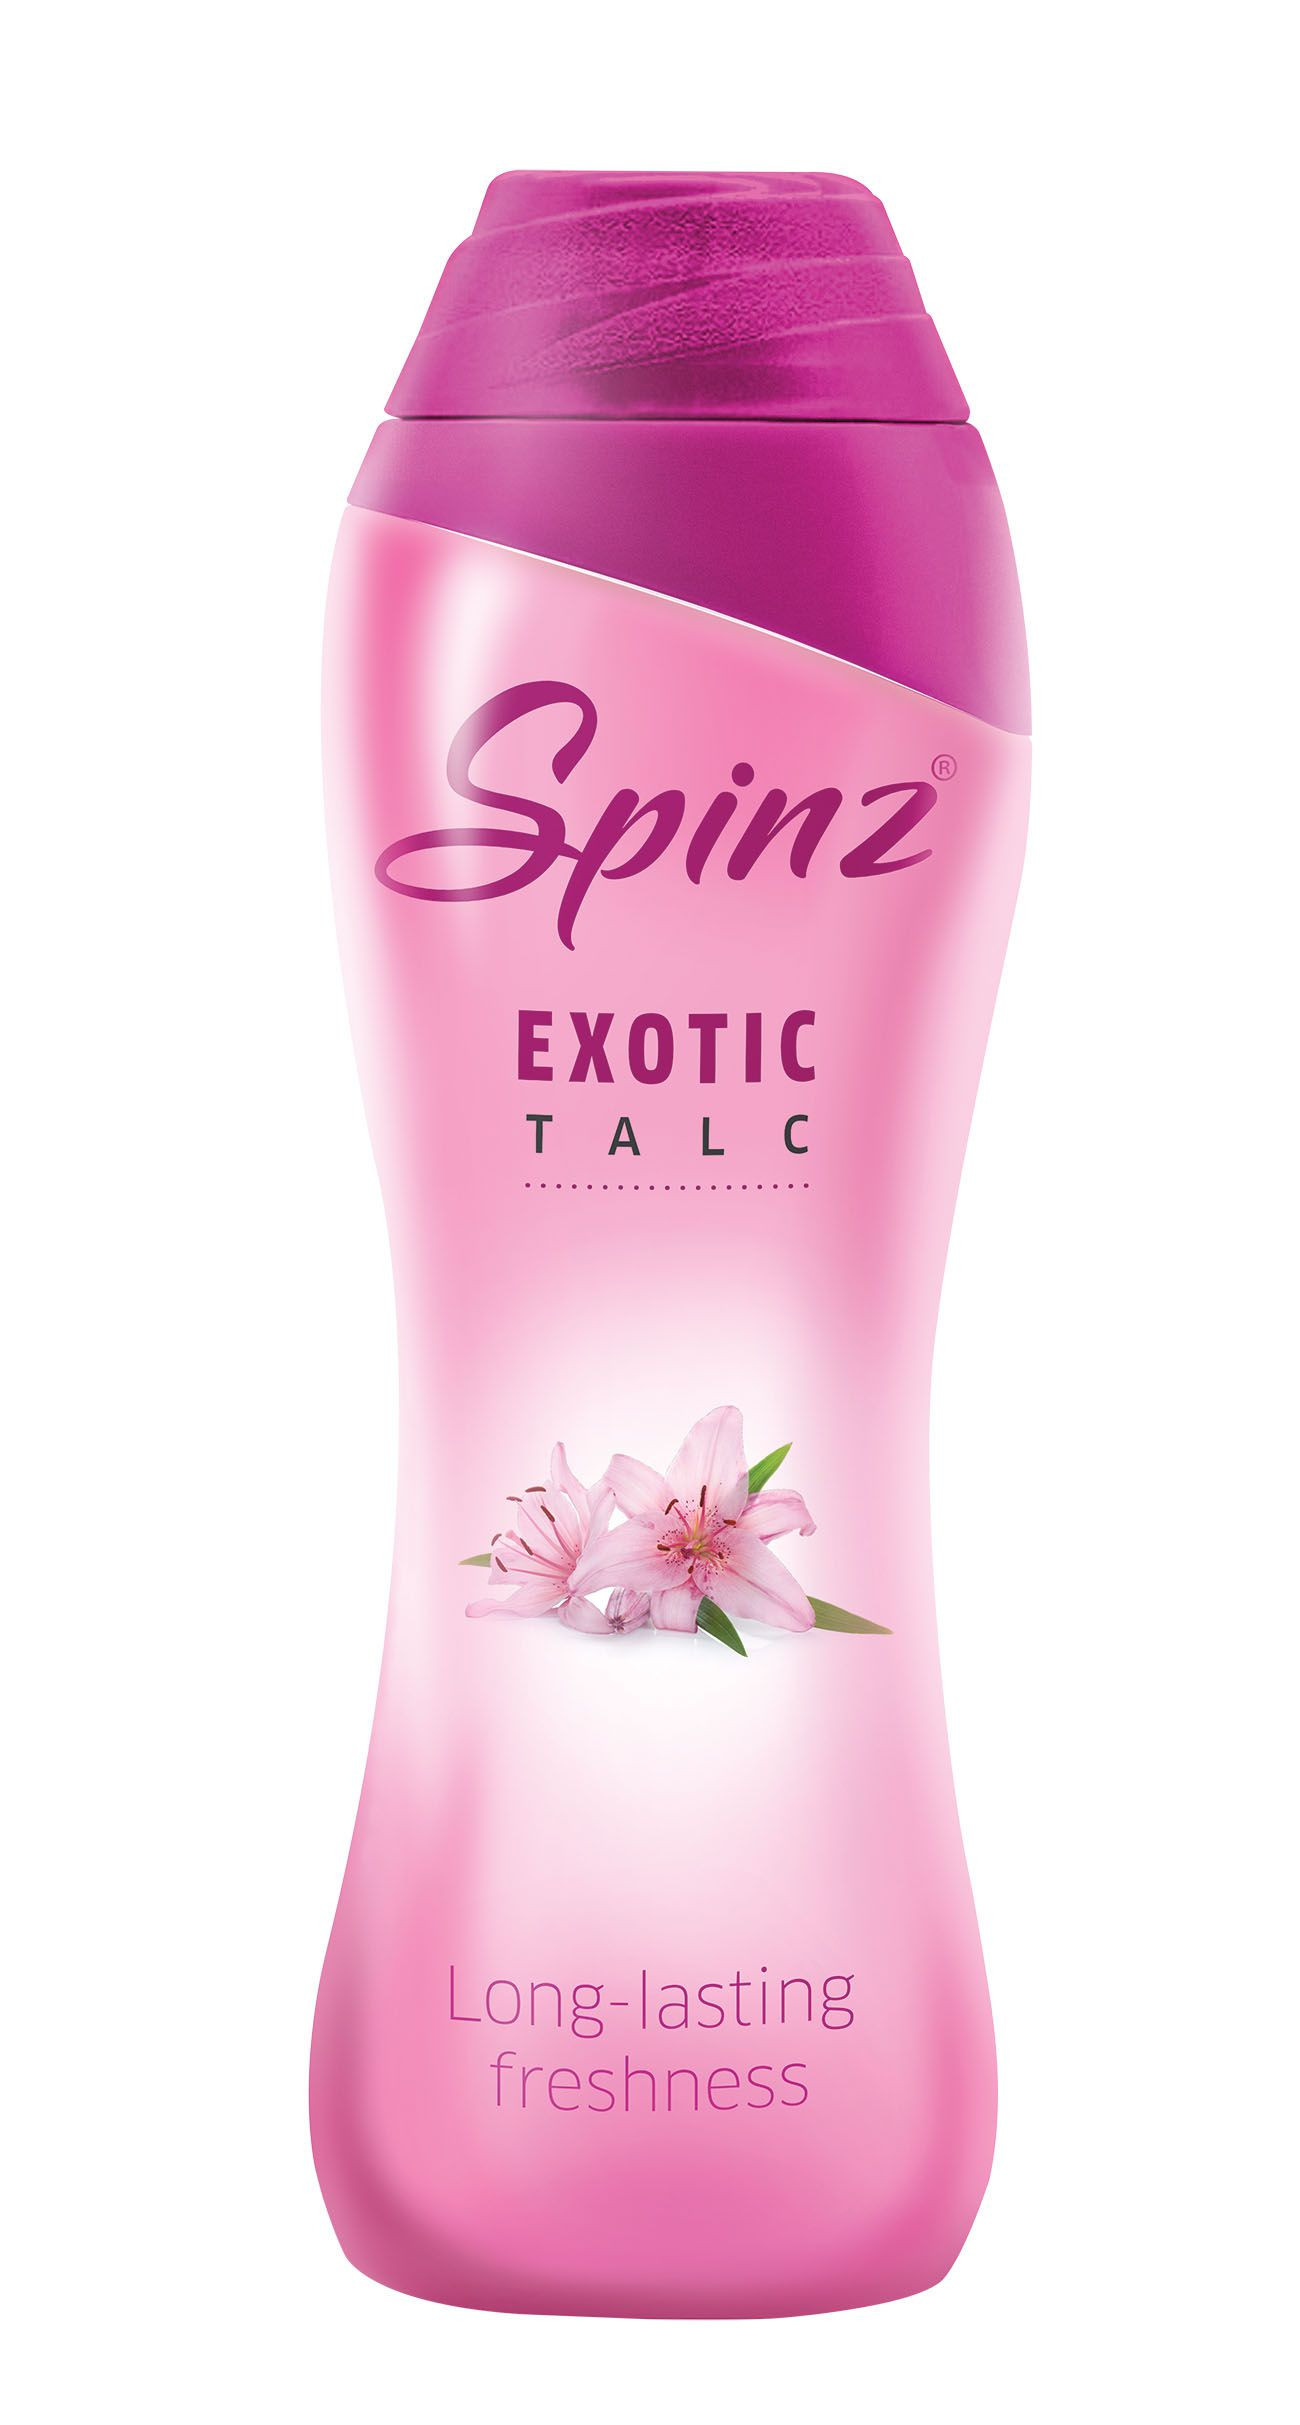 Spinz Exotic Talcum Powder 400 g